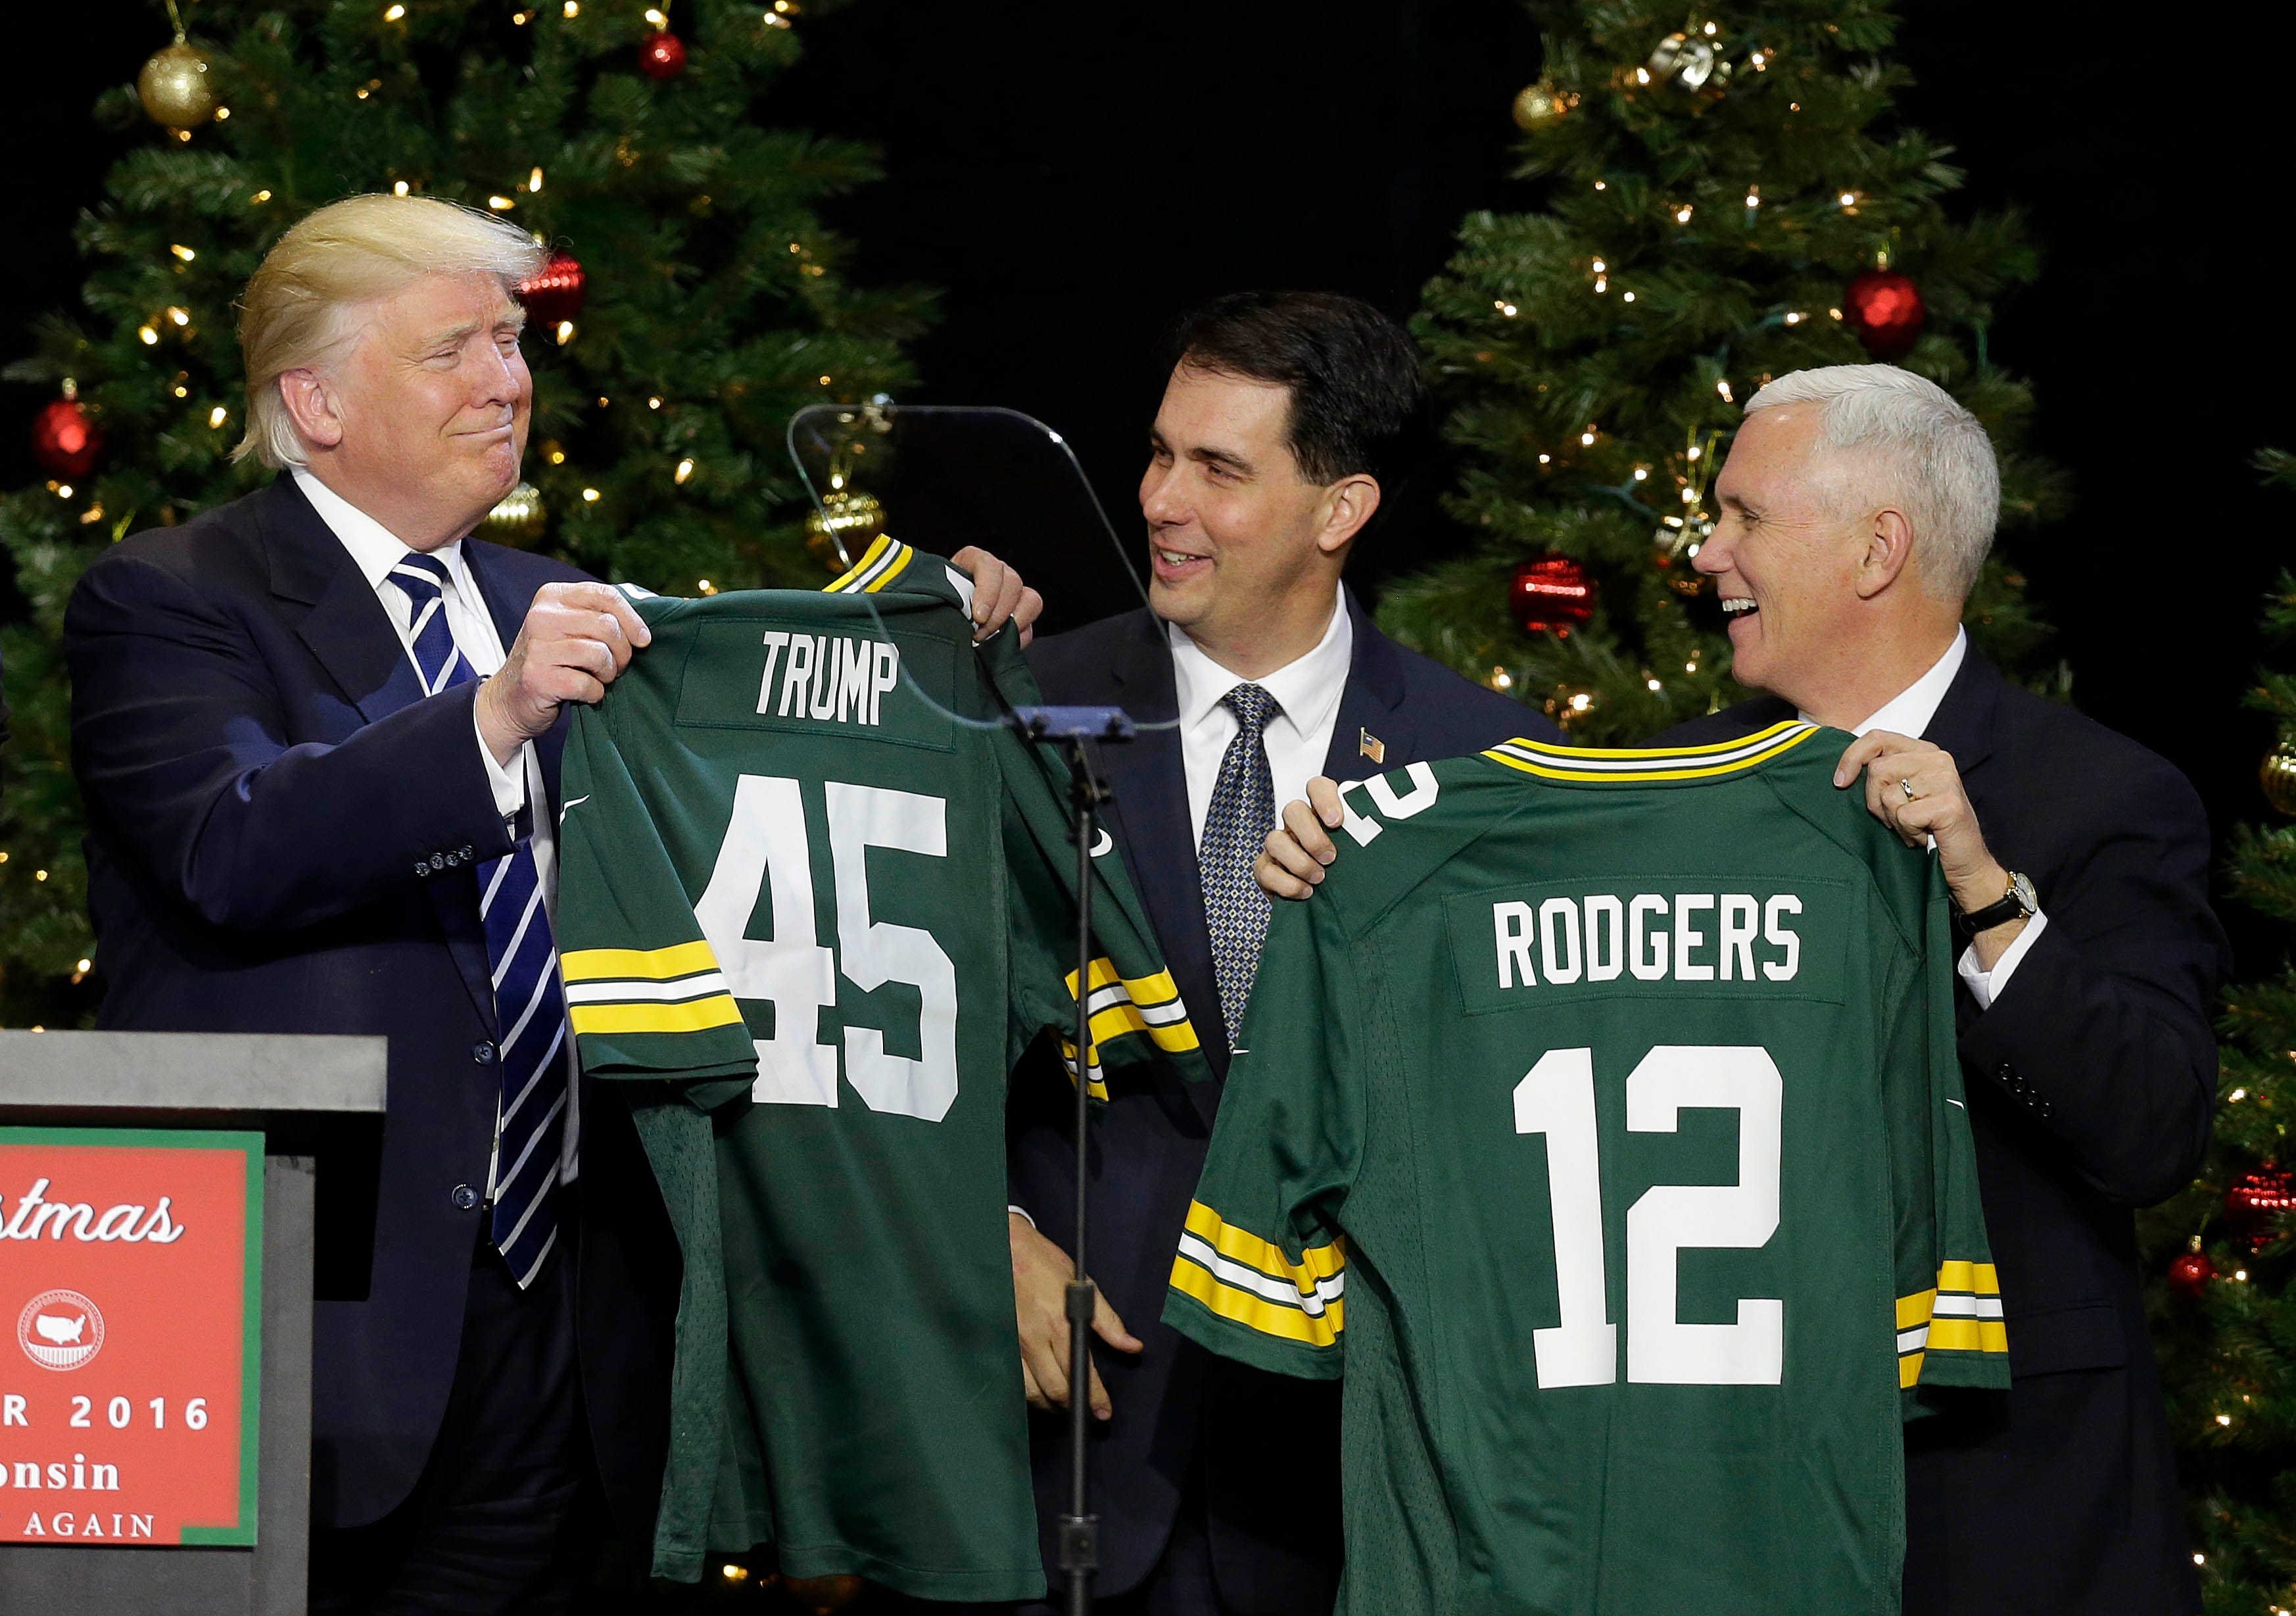 President-Elect Donald J. Trump  and Vice President-Elect Mike Pence, accept Packers jerseys from Governor Scott Walker and House Speaker Paul Ryan after Trump spoke  to supporters at the Wisconsin State Fair Exposition Center as part of the USA Thank You Tour 2016. Trump and Vice-President-Elect Mike Pence are touring states that helped him win the presidency in November.